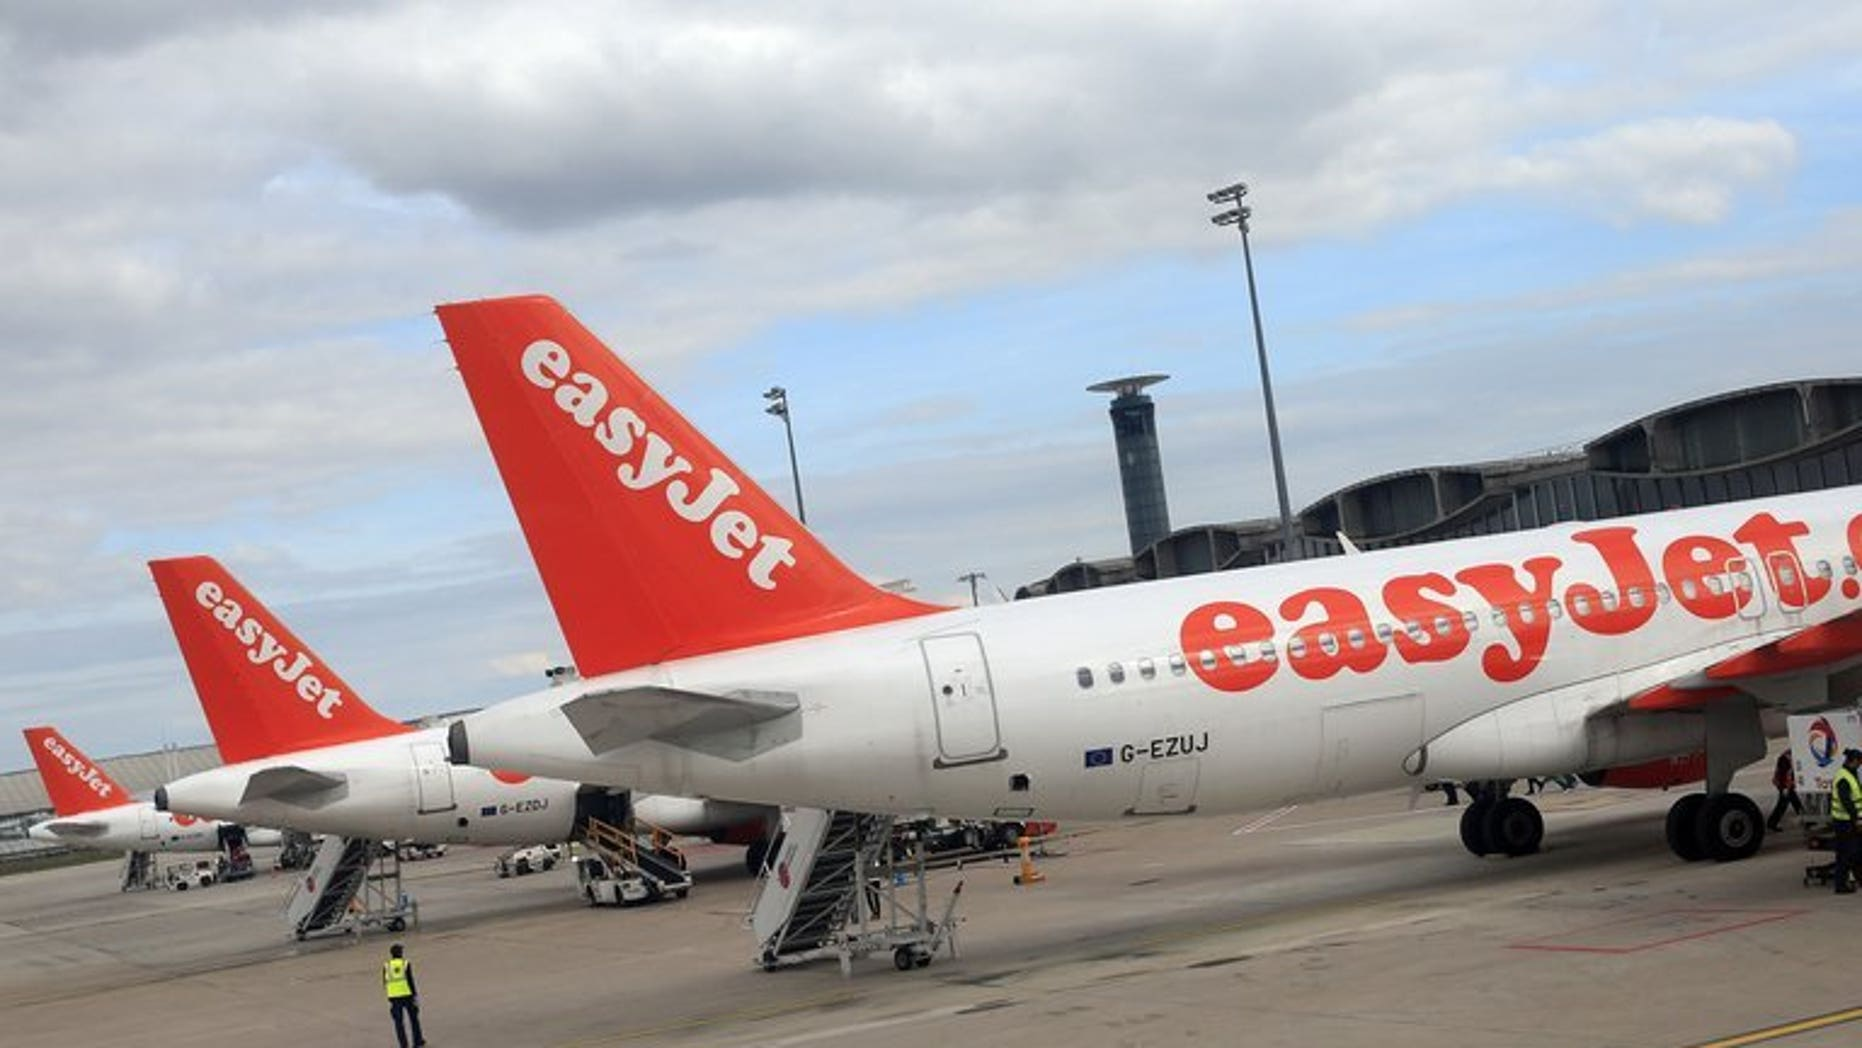 No-frills airline EasyJet on Wednesday said revenues jumped in the group's third quarter on rising passenger numbers and fares.